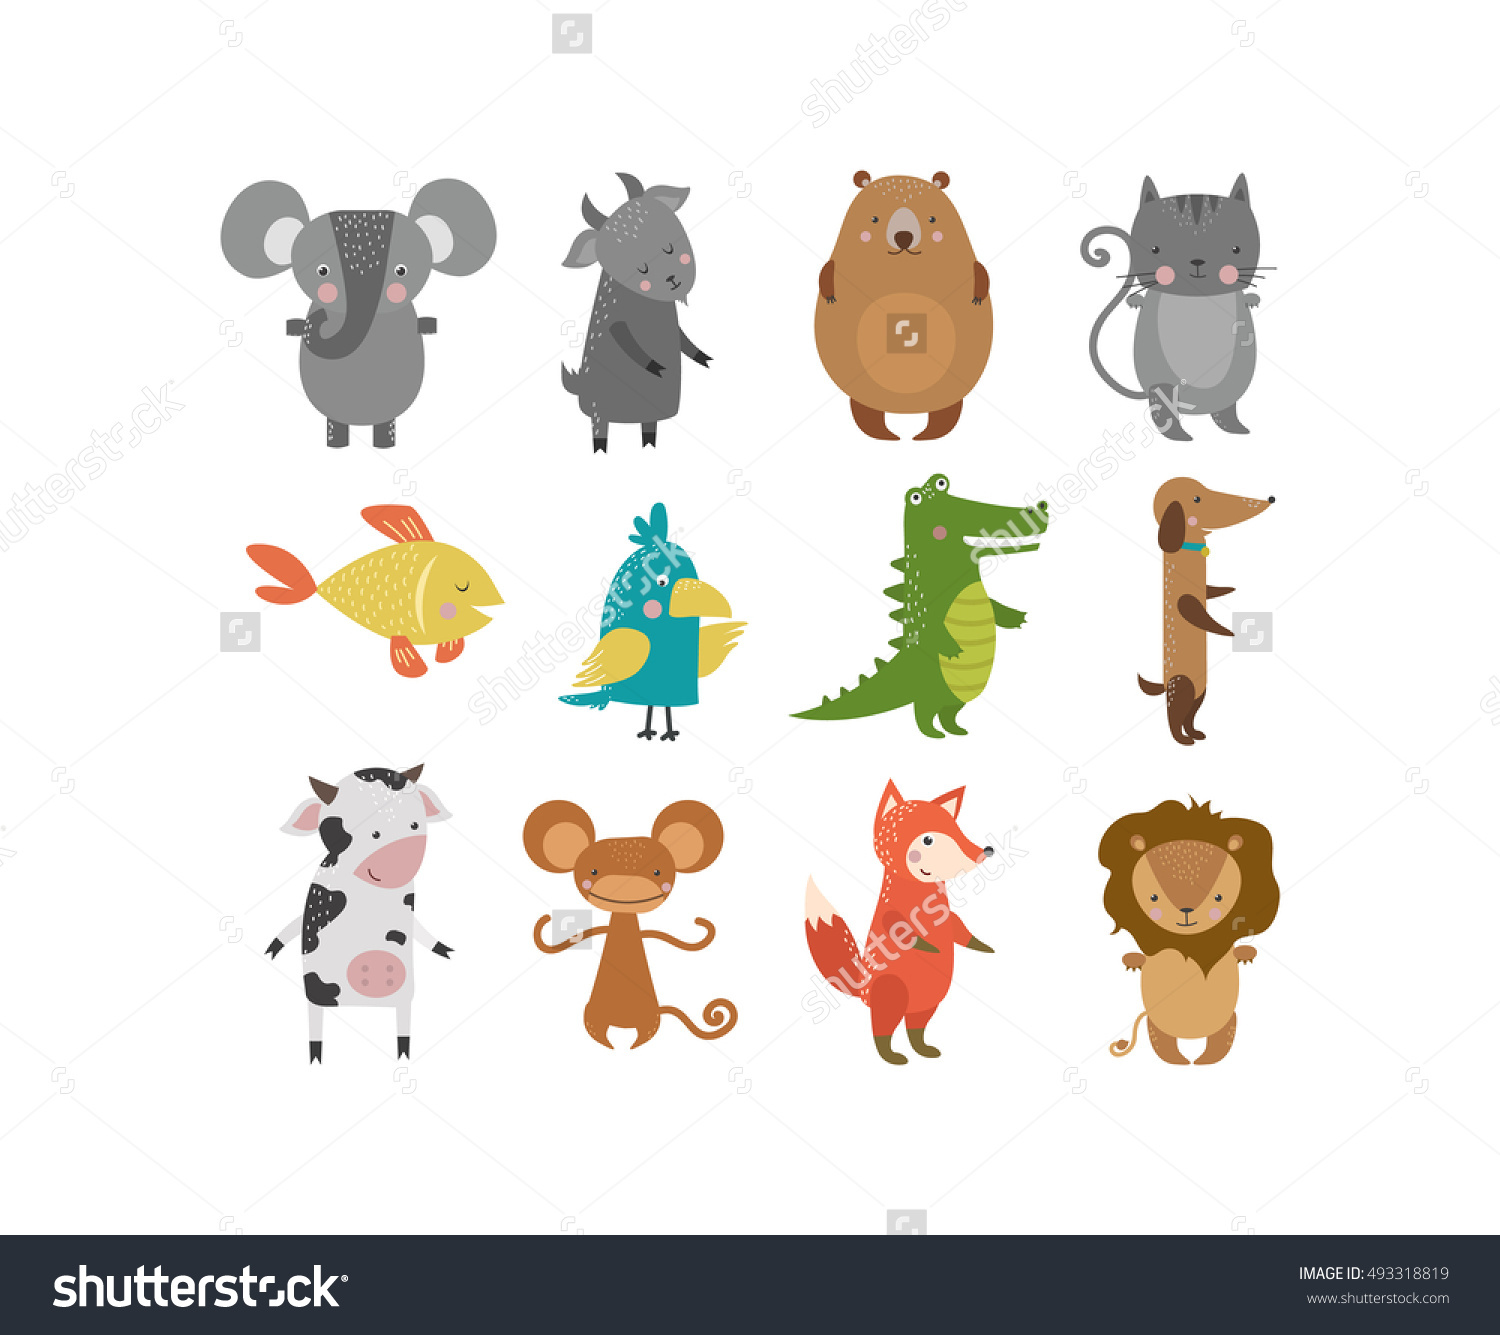 Cute animals vector character isolated on white backgrund Pretty kids style wild and farm pet animals character isolated Some animals